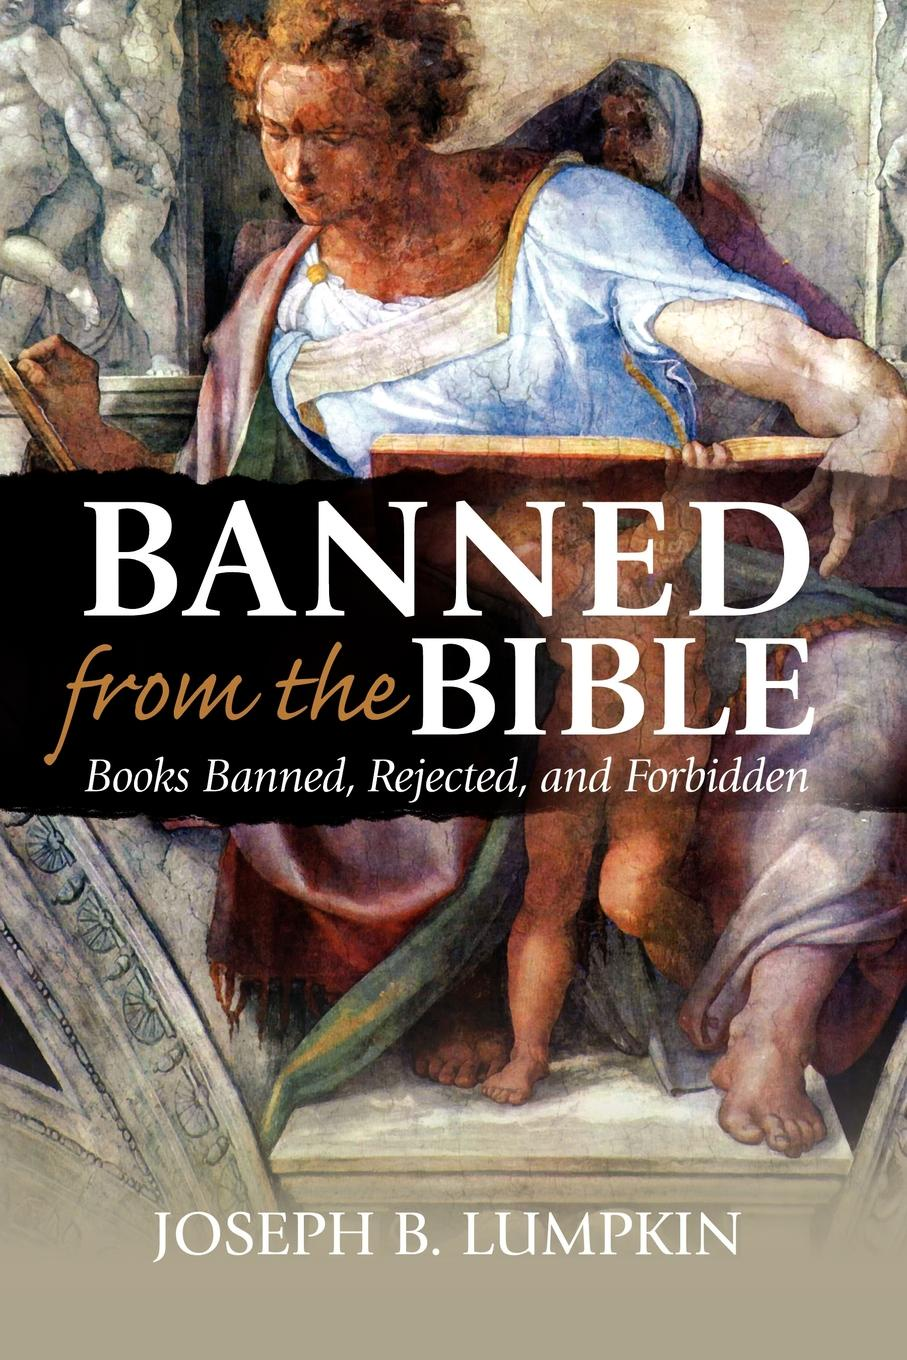 Joseph B. Lumpkin Banned from the Bible. Books Banned, Rejected, and Forbidden the gospel of john vol 1 enlarged print